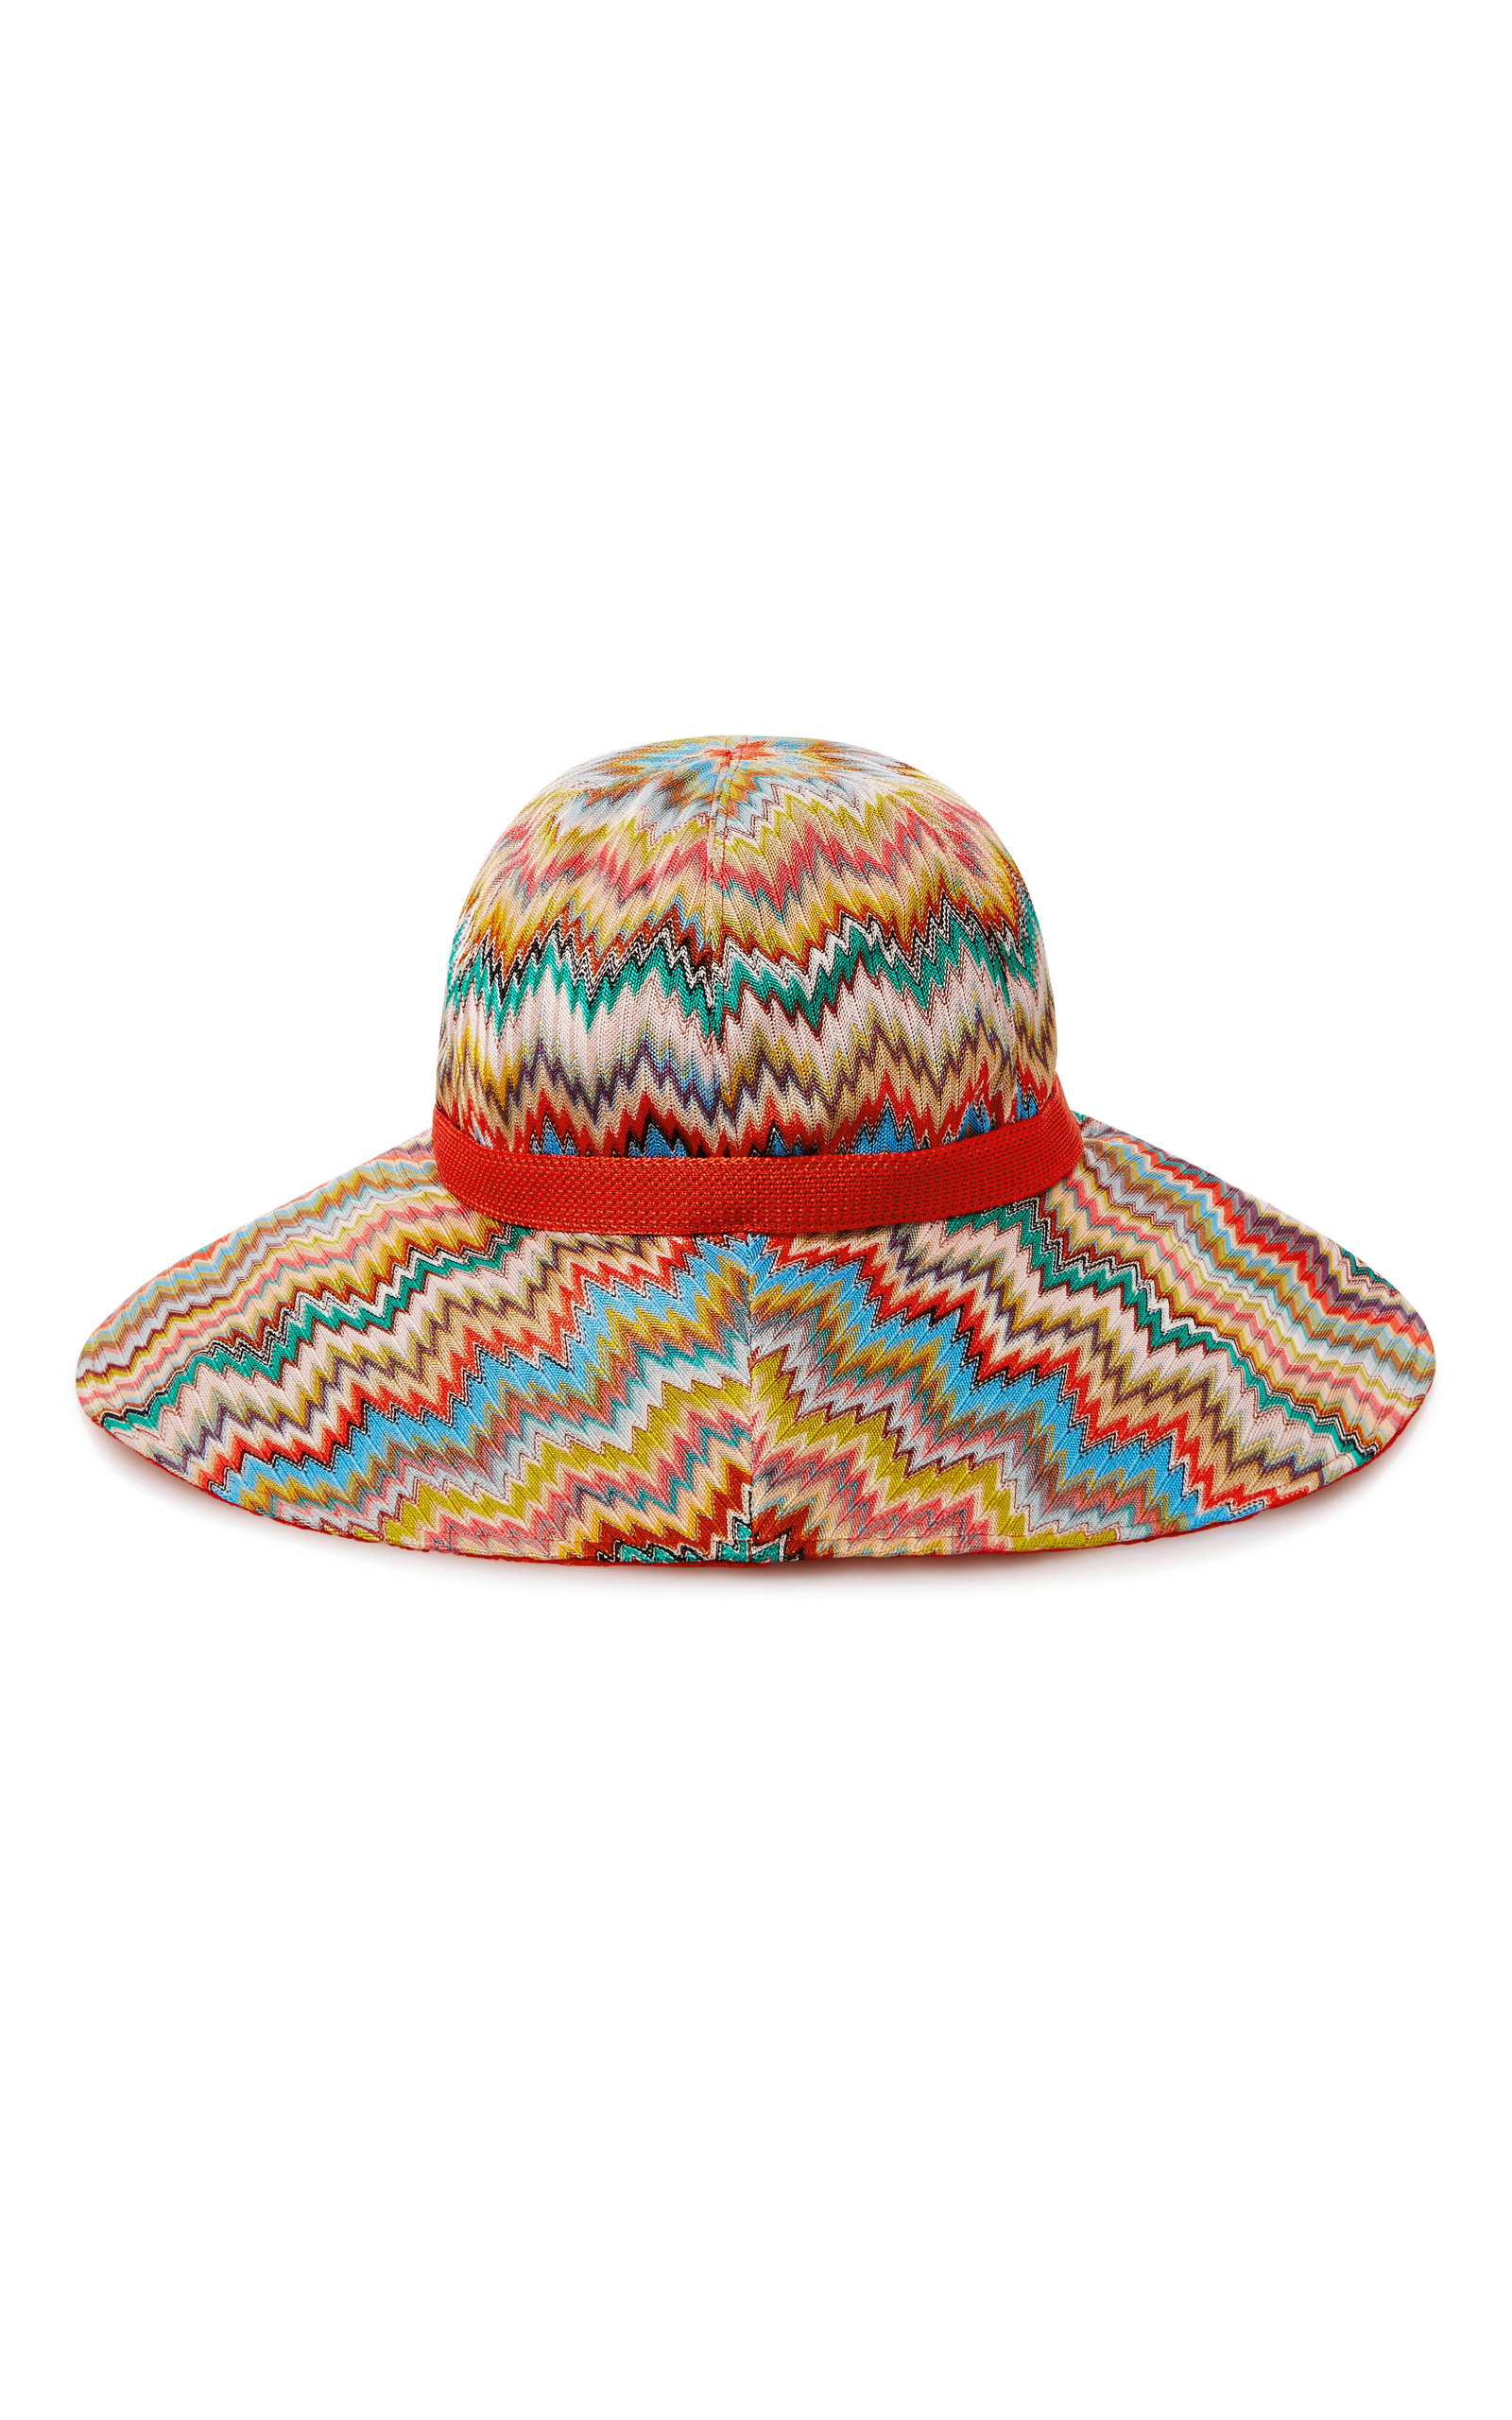 1697f84e093 Chevron-Knit Sunhat by Missoni Mare